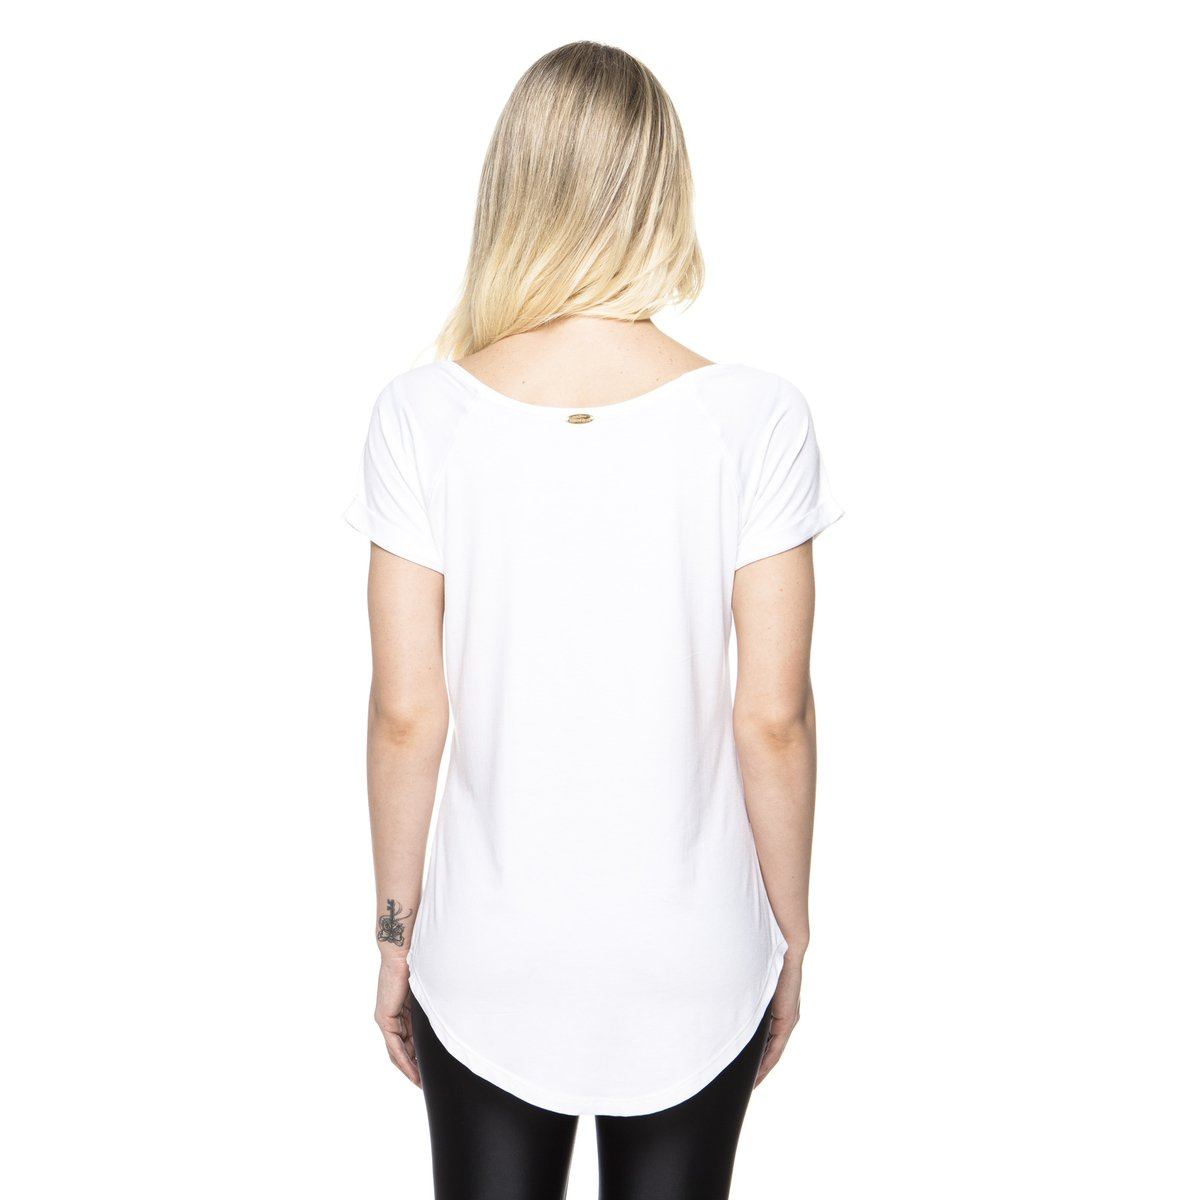 Camiseta Up Pocket New Camiseta Branco New Vis vSq5qX8